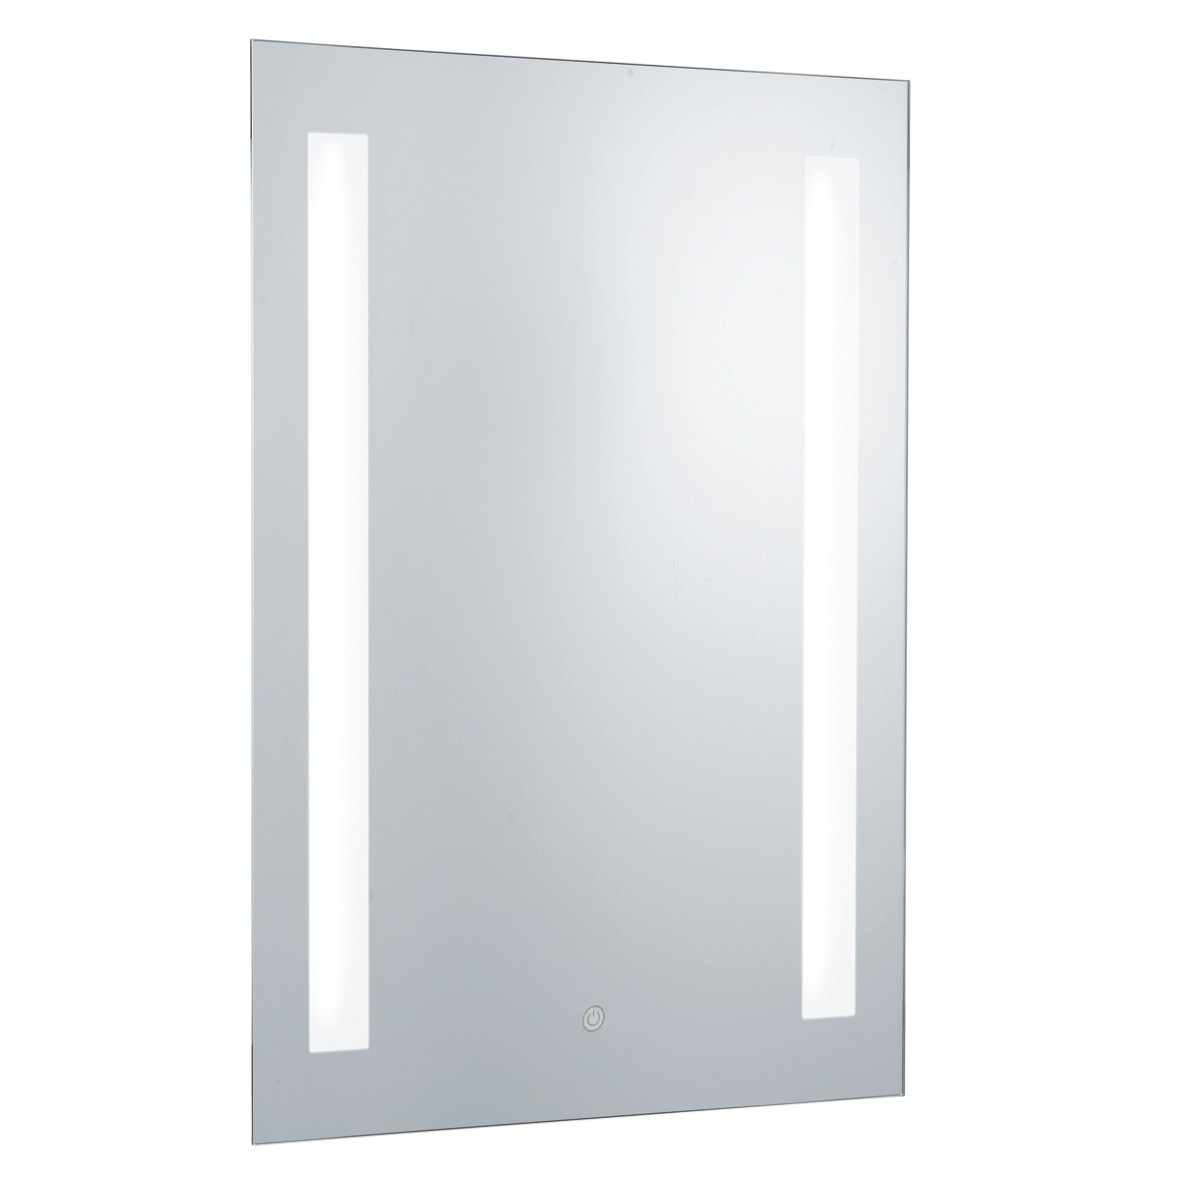 Ip44 Illuminated 2 Light Touch Bathroom Mirror With Shaver Socket 7450